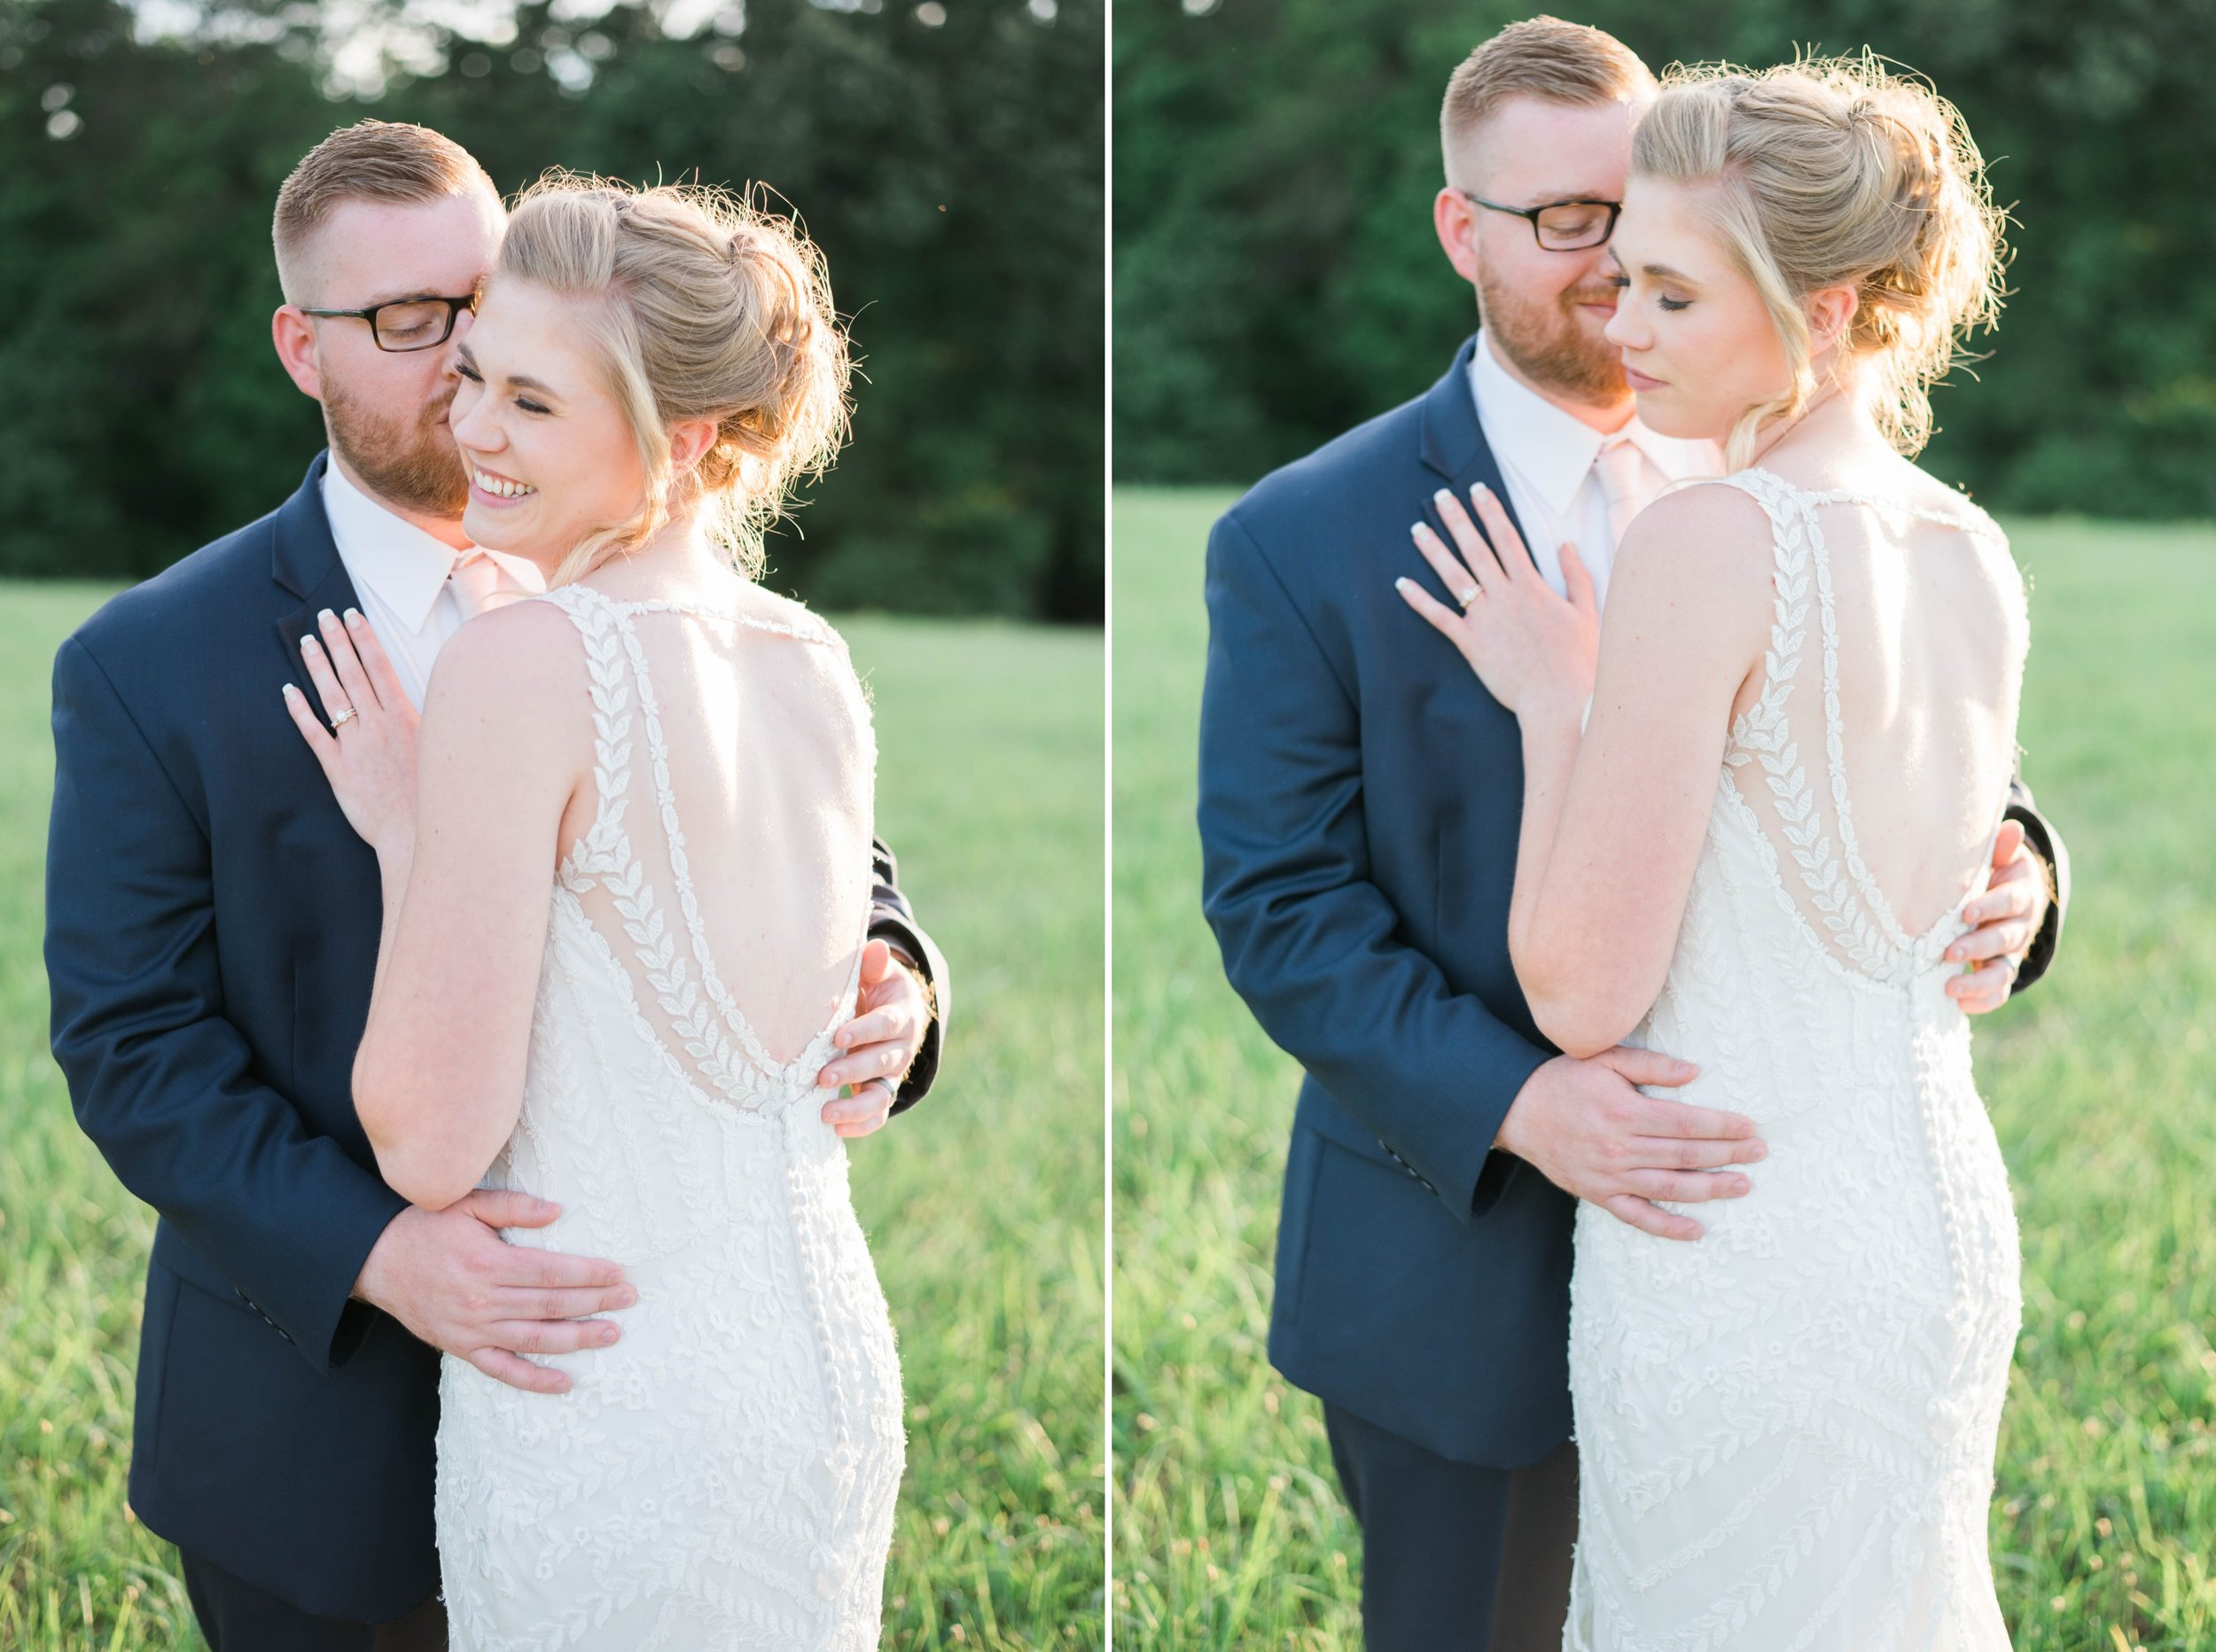 SorellaFarms_VirginiaWeddingPhotographer_BarnWedding_Lynchburgweddingphotographer_DanielleTyler 20.jpg